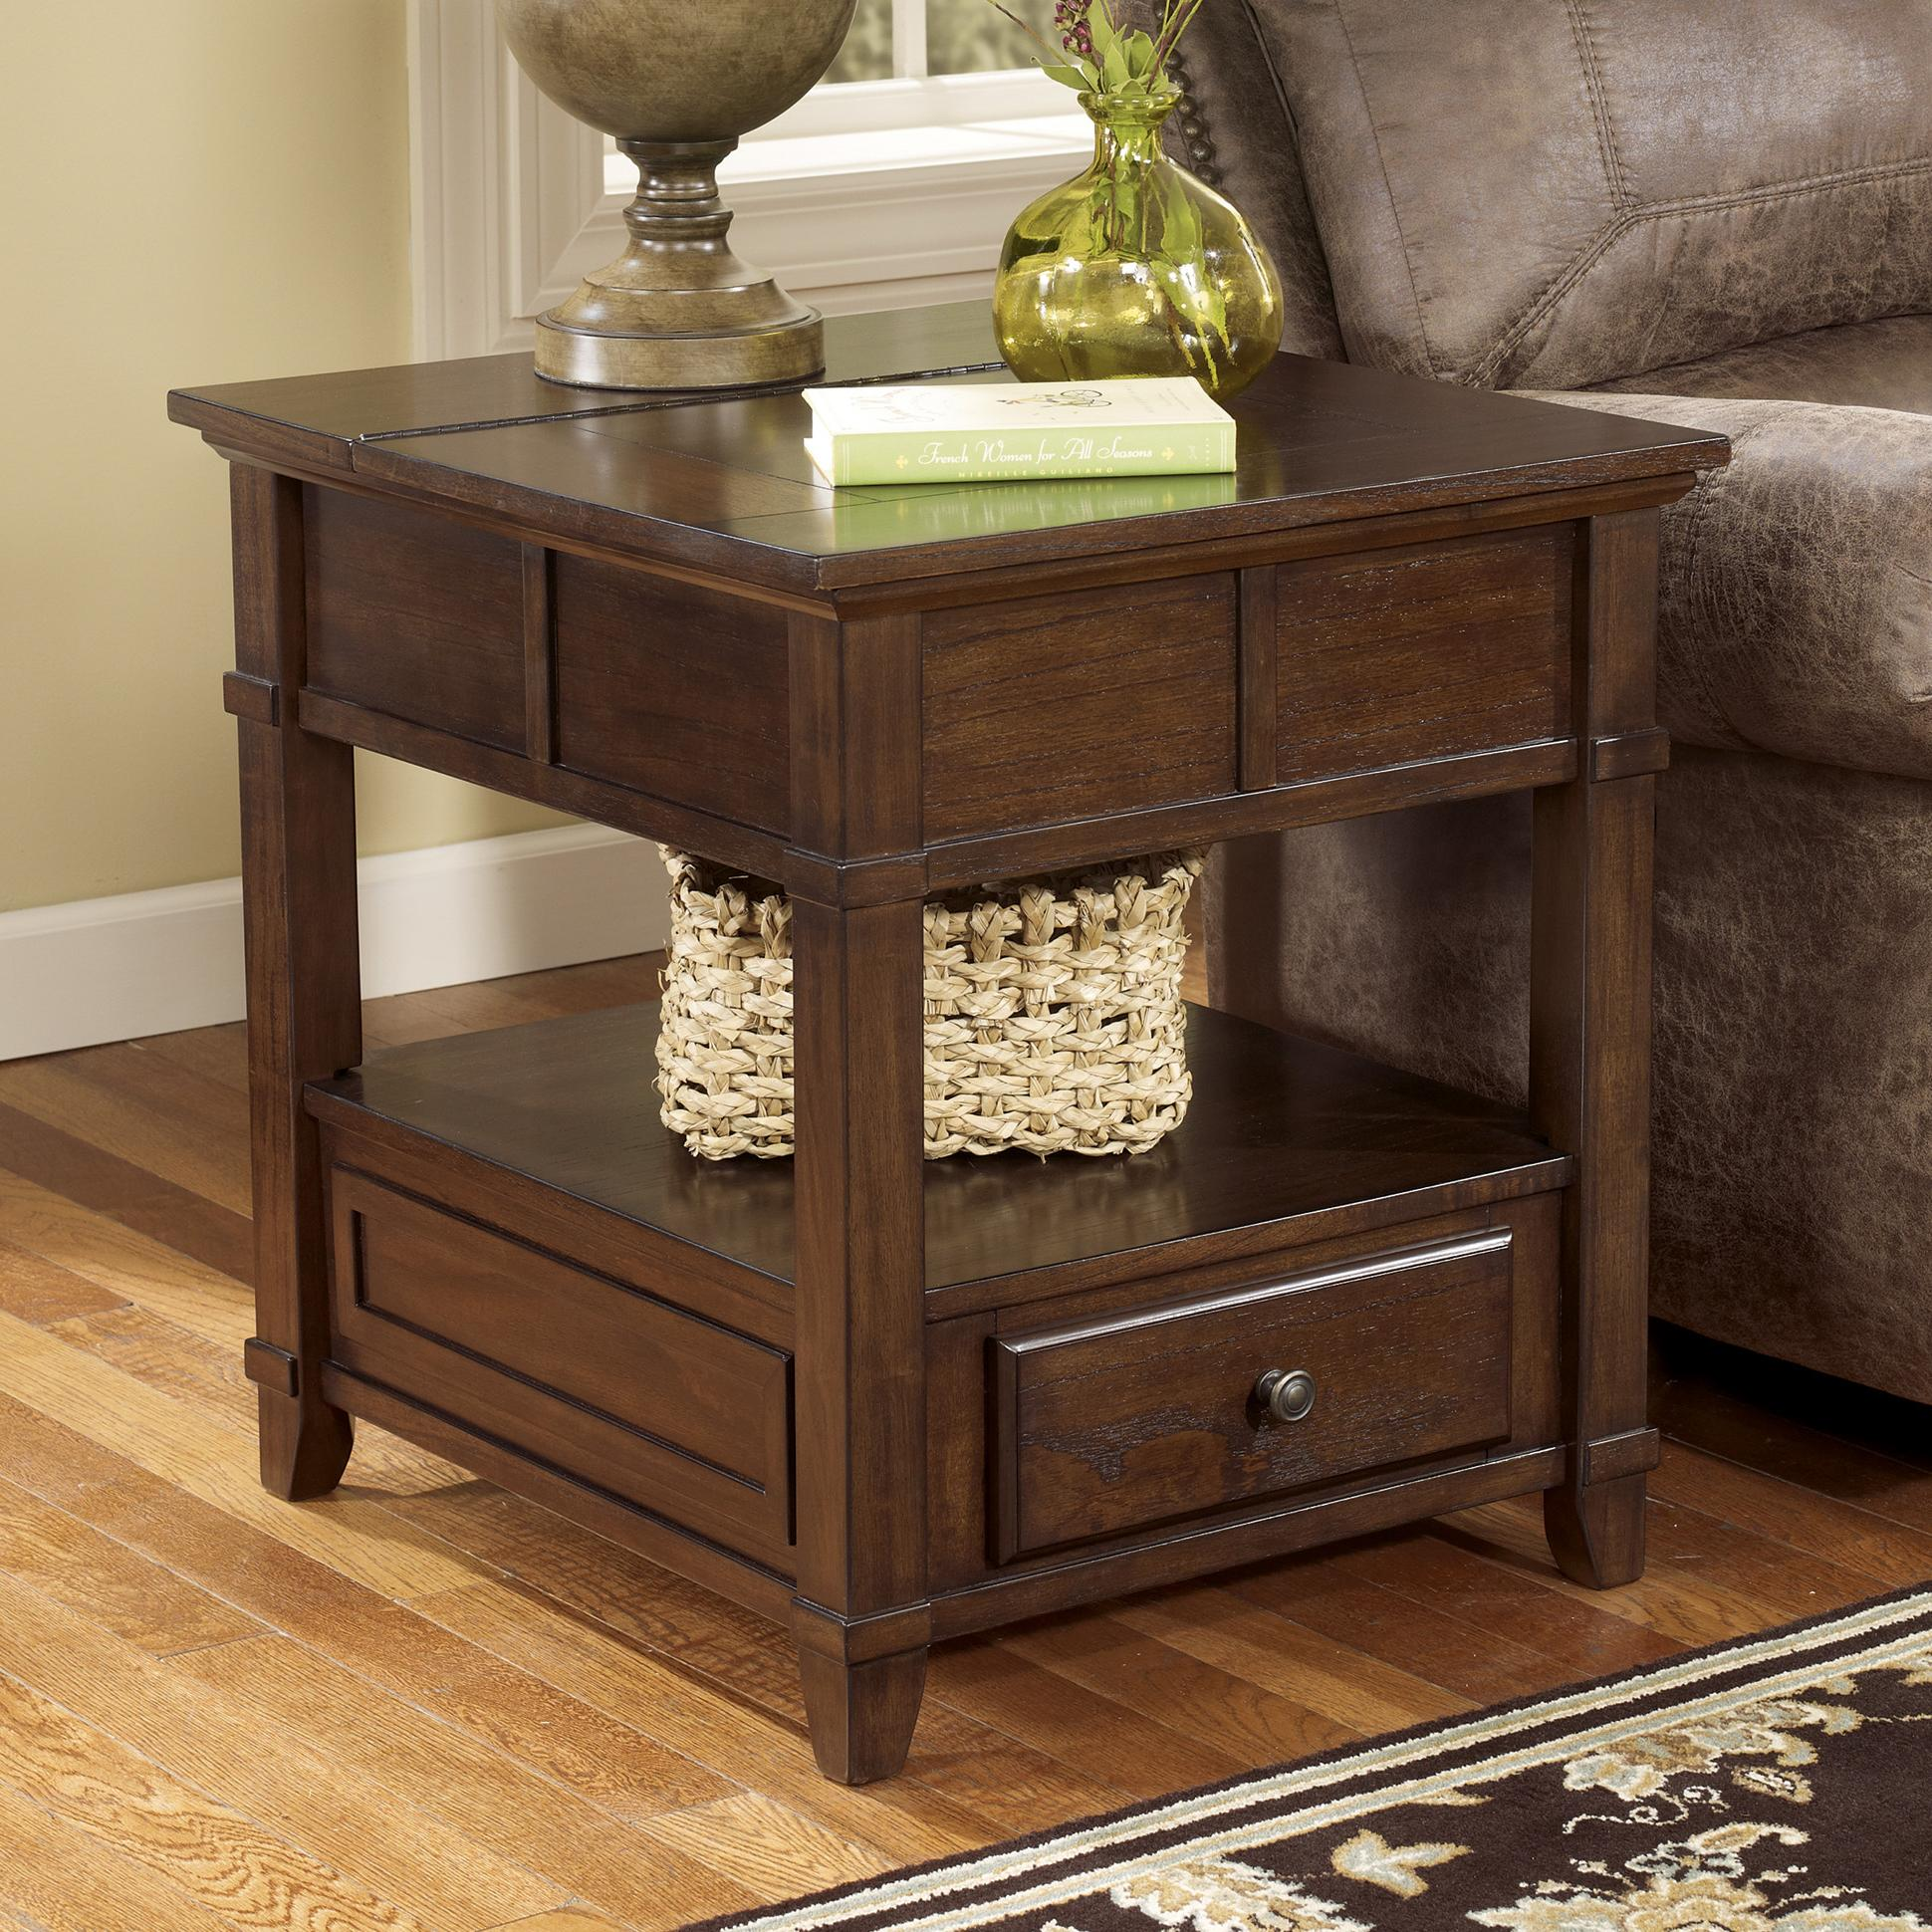 signature design ashley gately end table with hidden products color accent rectangular diy granite countertops classy lamps ikea living room chairs espresso finish pottery barn